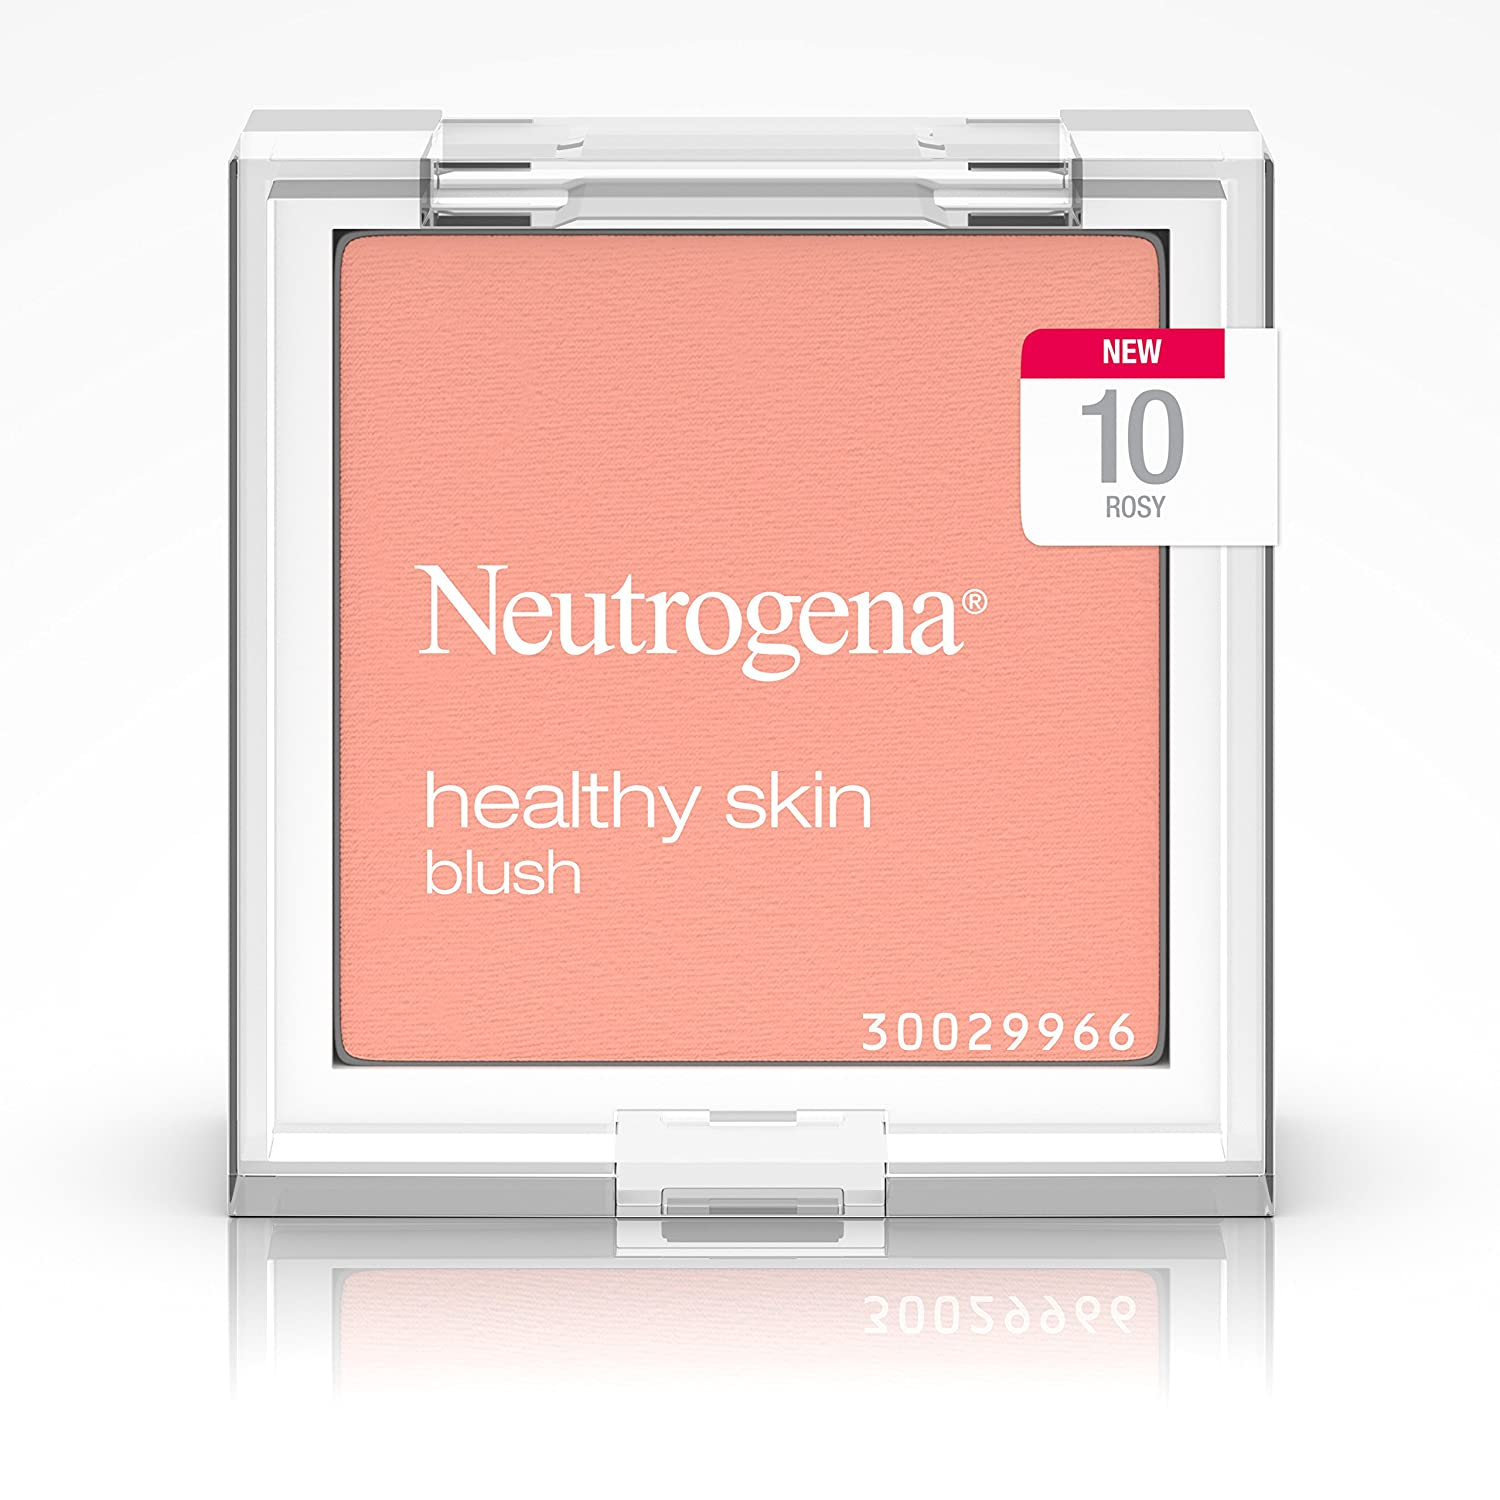 Neutrogena Healthy Skin Blush, 10 Rosy, .19 Oz.